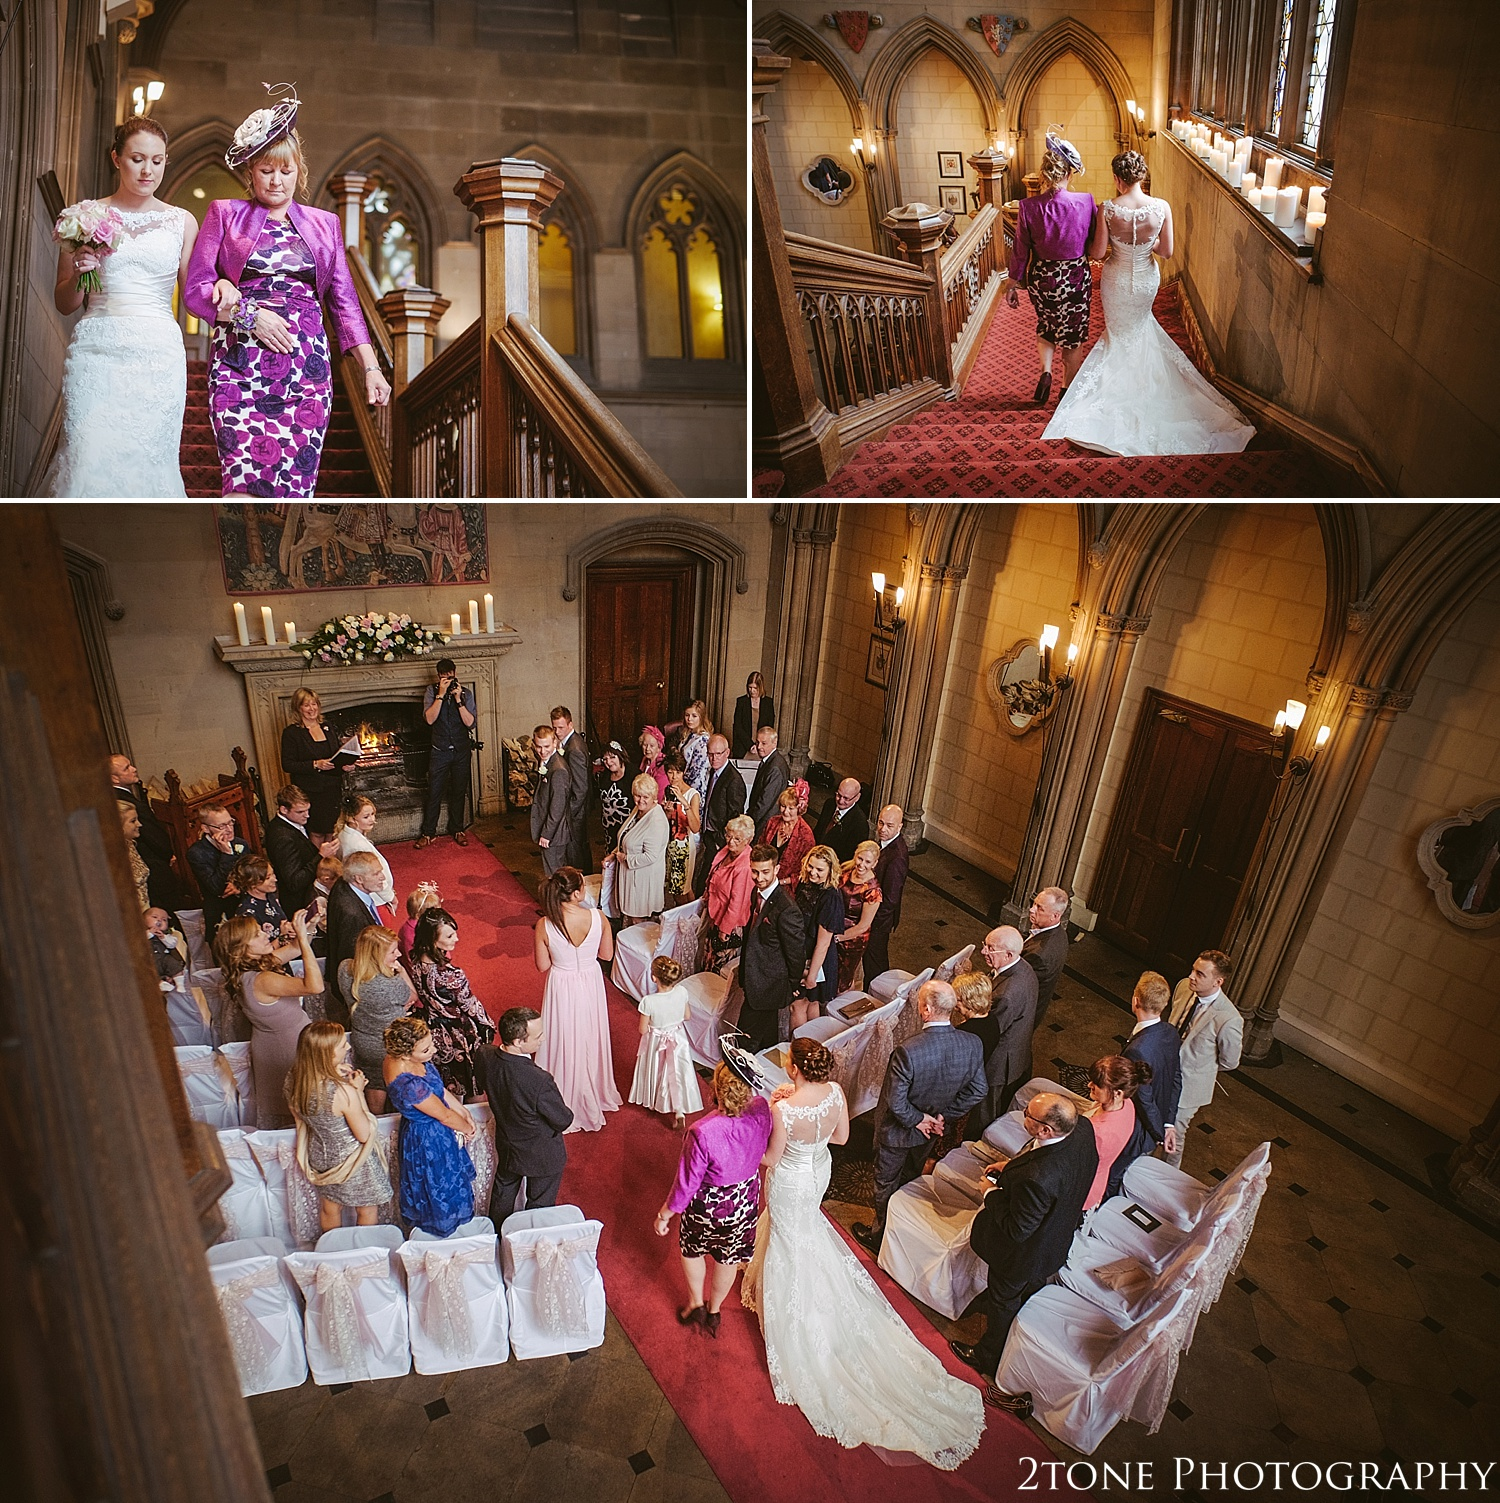 Wedding ceremony in the great Hall at Matfen Hall.  Matfen Hall by Durham based wedding photographers 2tone Photography